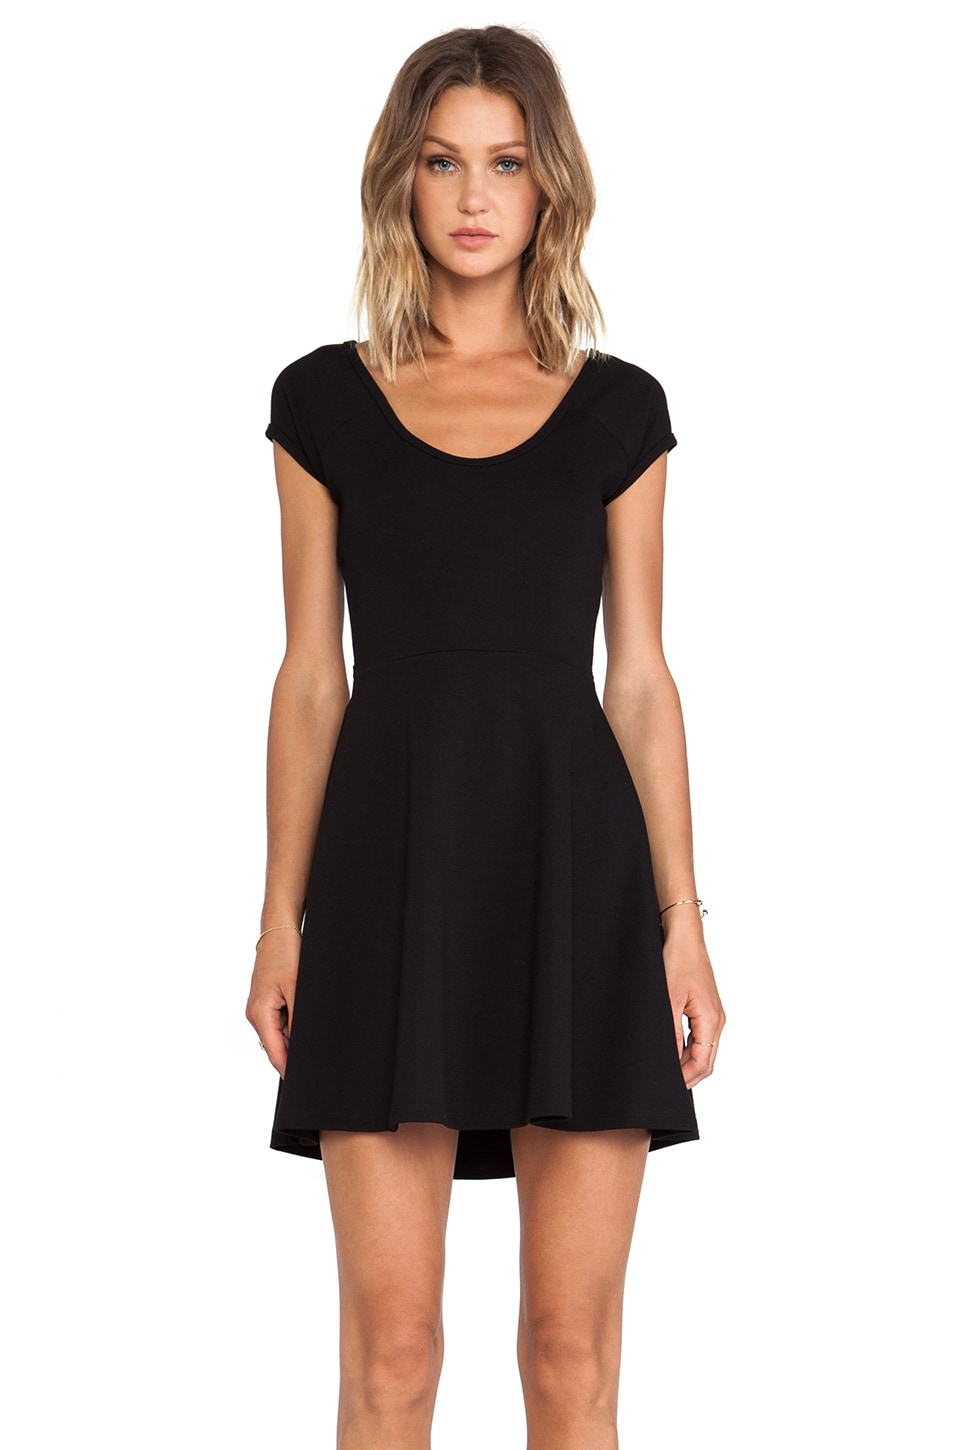 BLQ BASIQ BLQ Basics Cut Out Back Short Sleeve Dress in Black